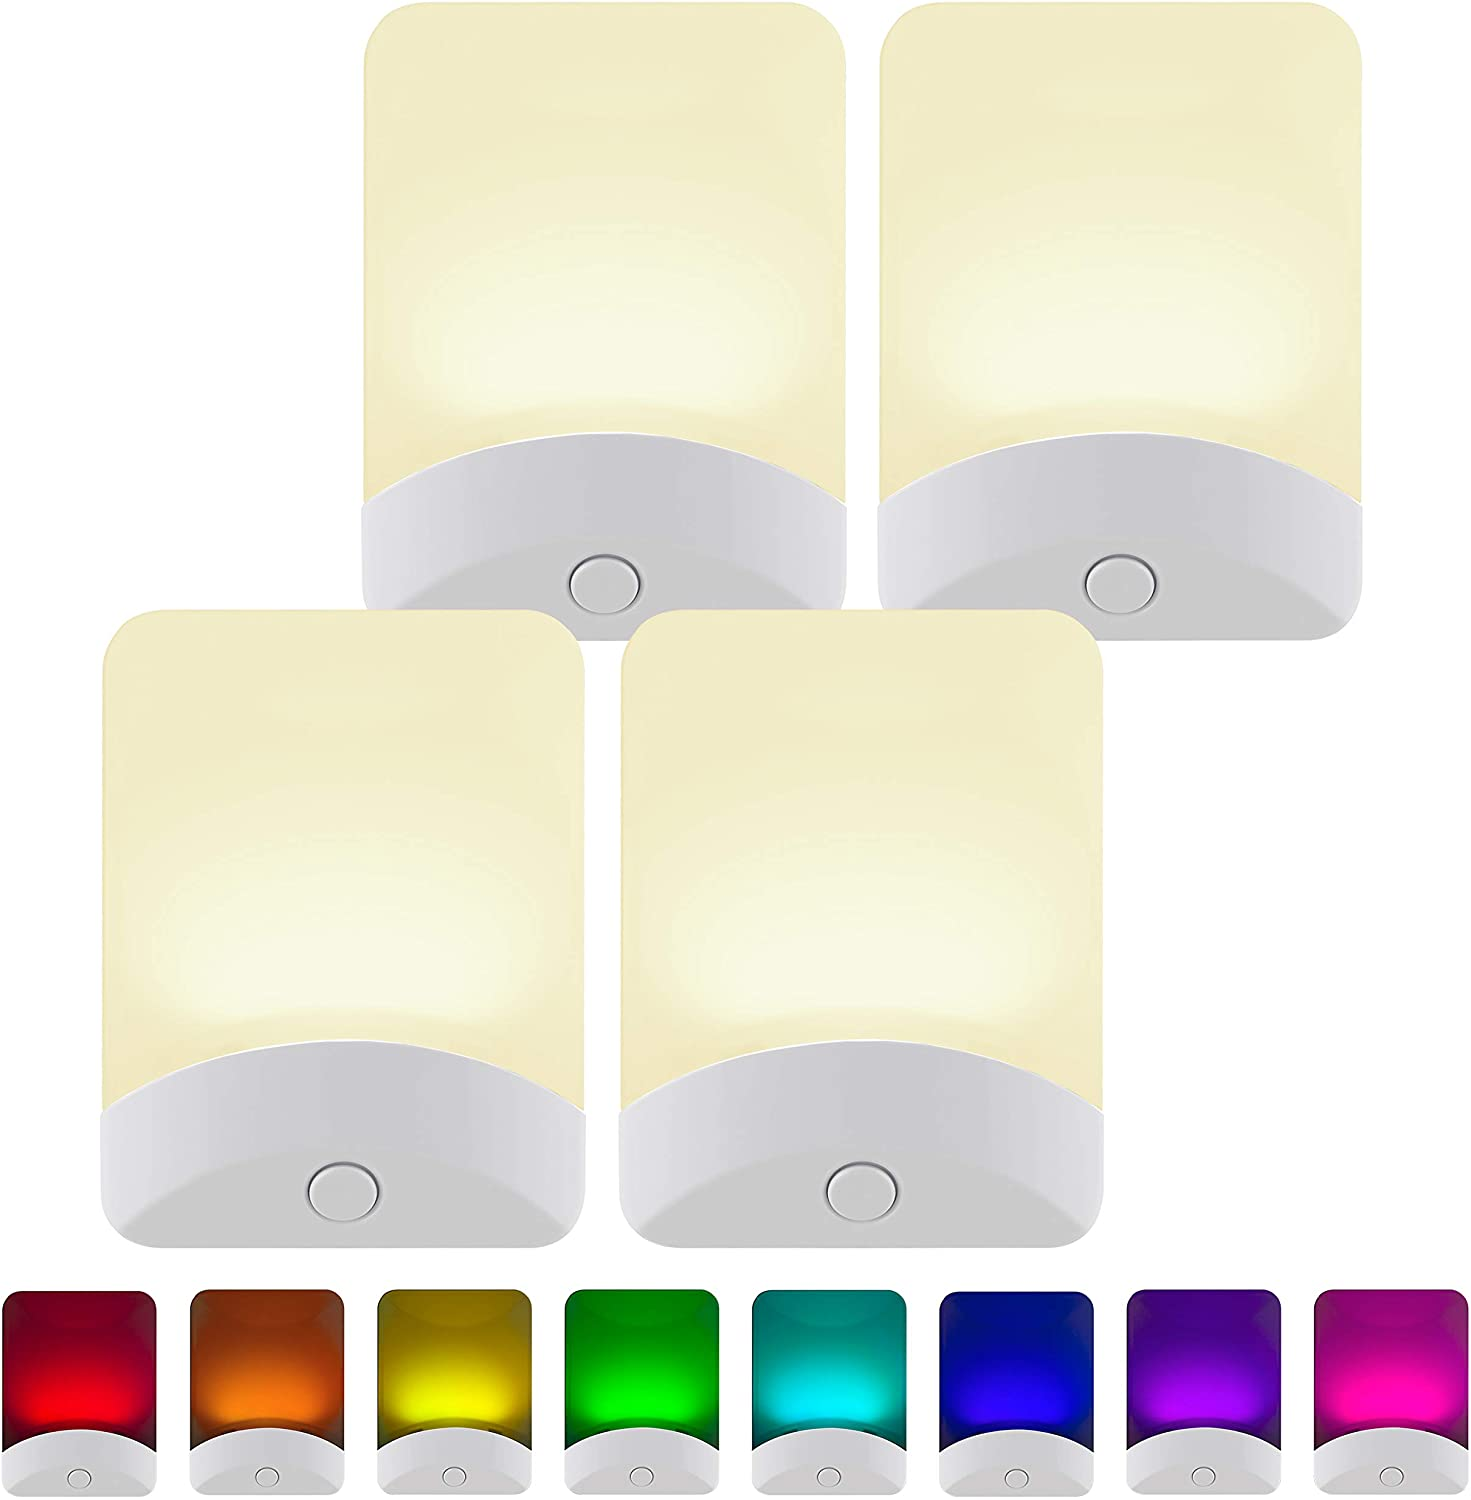 GE White Color-Changing LED Night Light, 4 Pack, Plug-in, Dusk-to-Dawn, Home Décor, UL-Listed, Ideal for Bedroom, Bathroom, Nursery, Kitchen, 50860, 4 Count